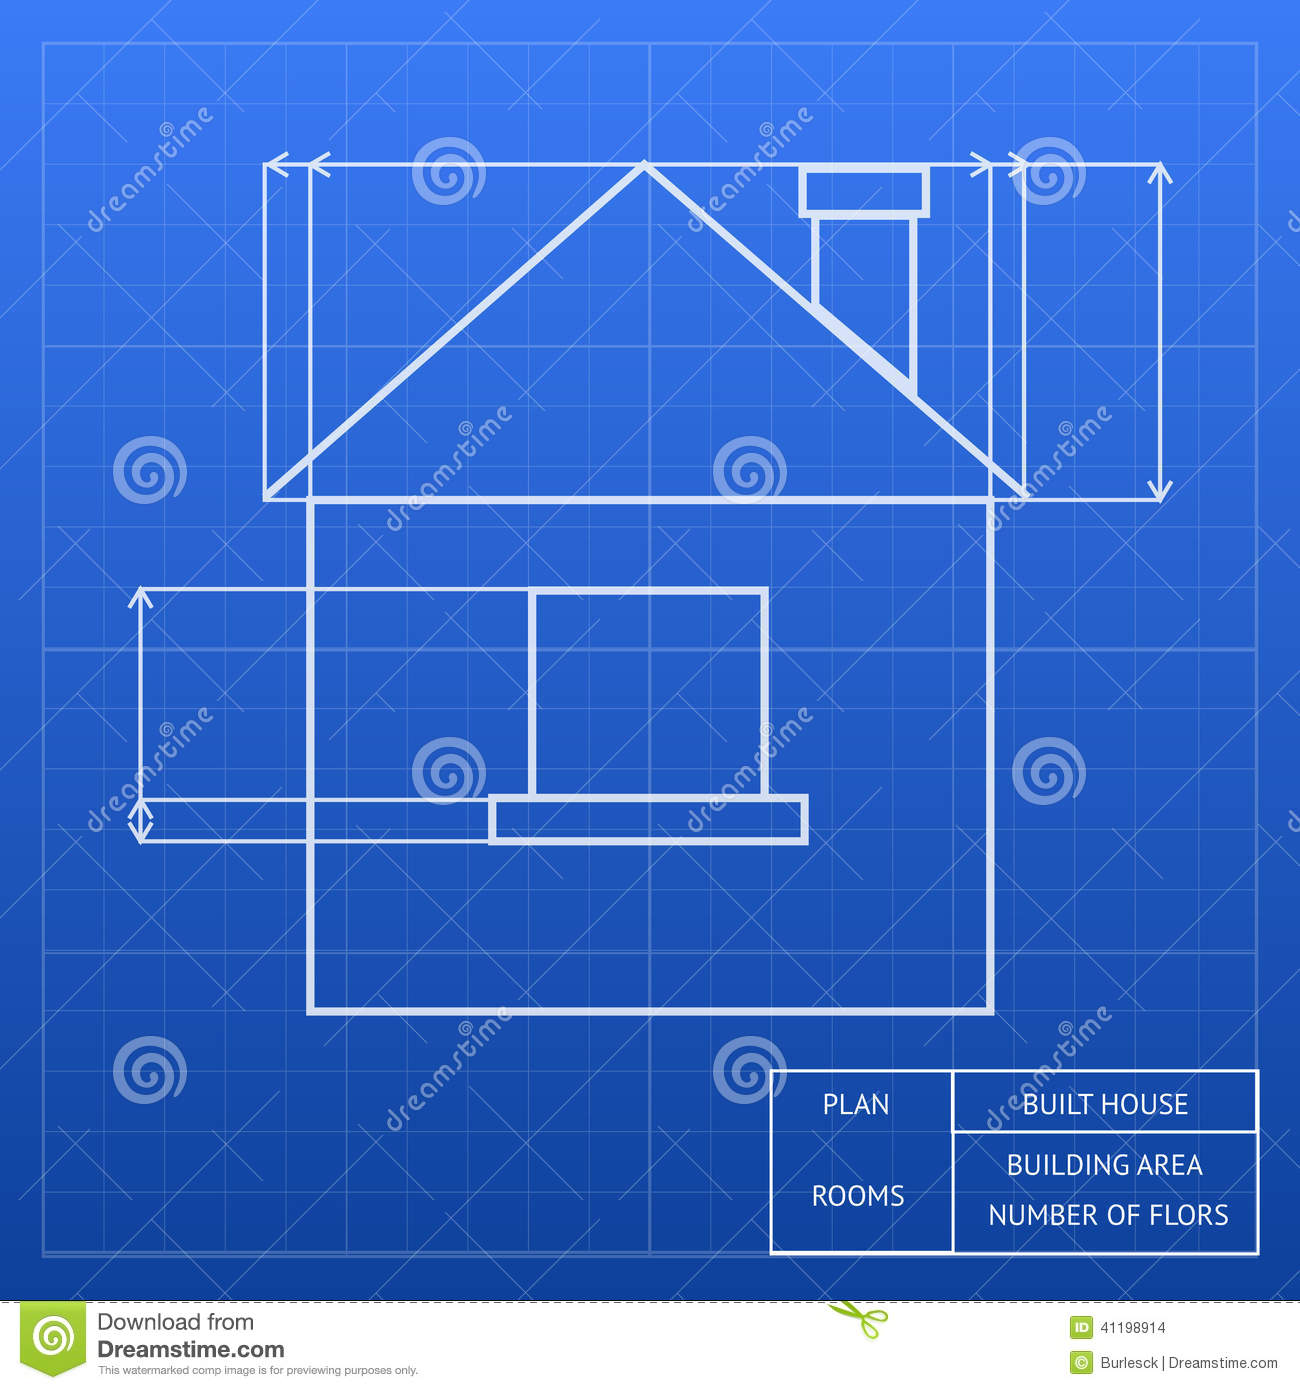 Blueprint of a house design stock vector image 41198914 for Blueprint of a house with measurements